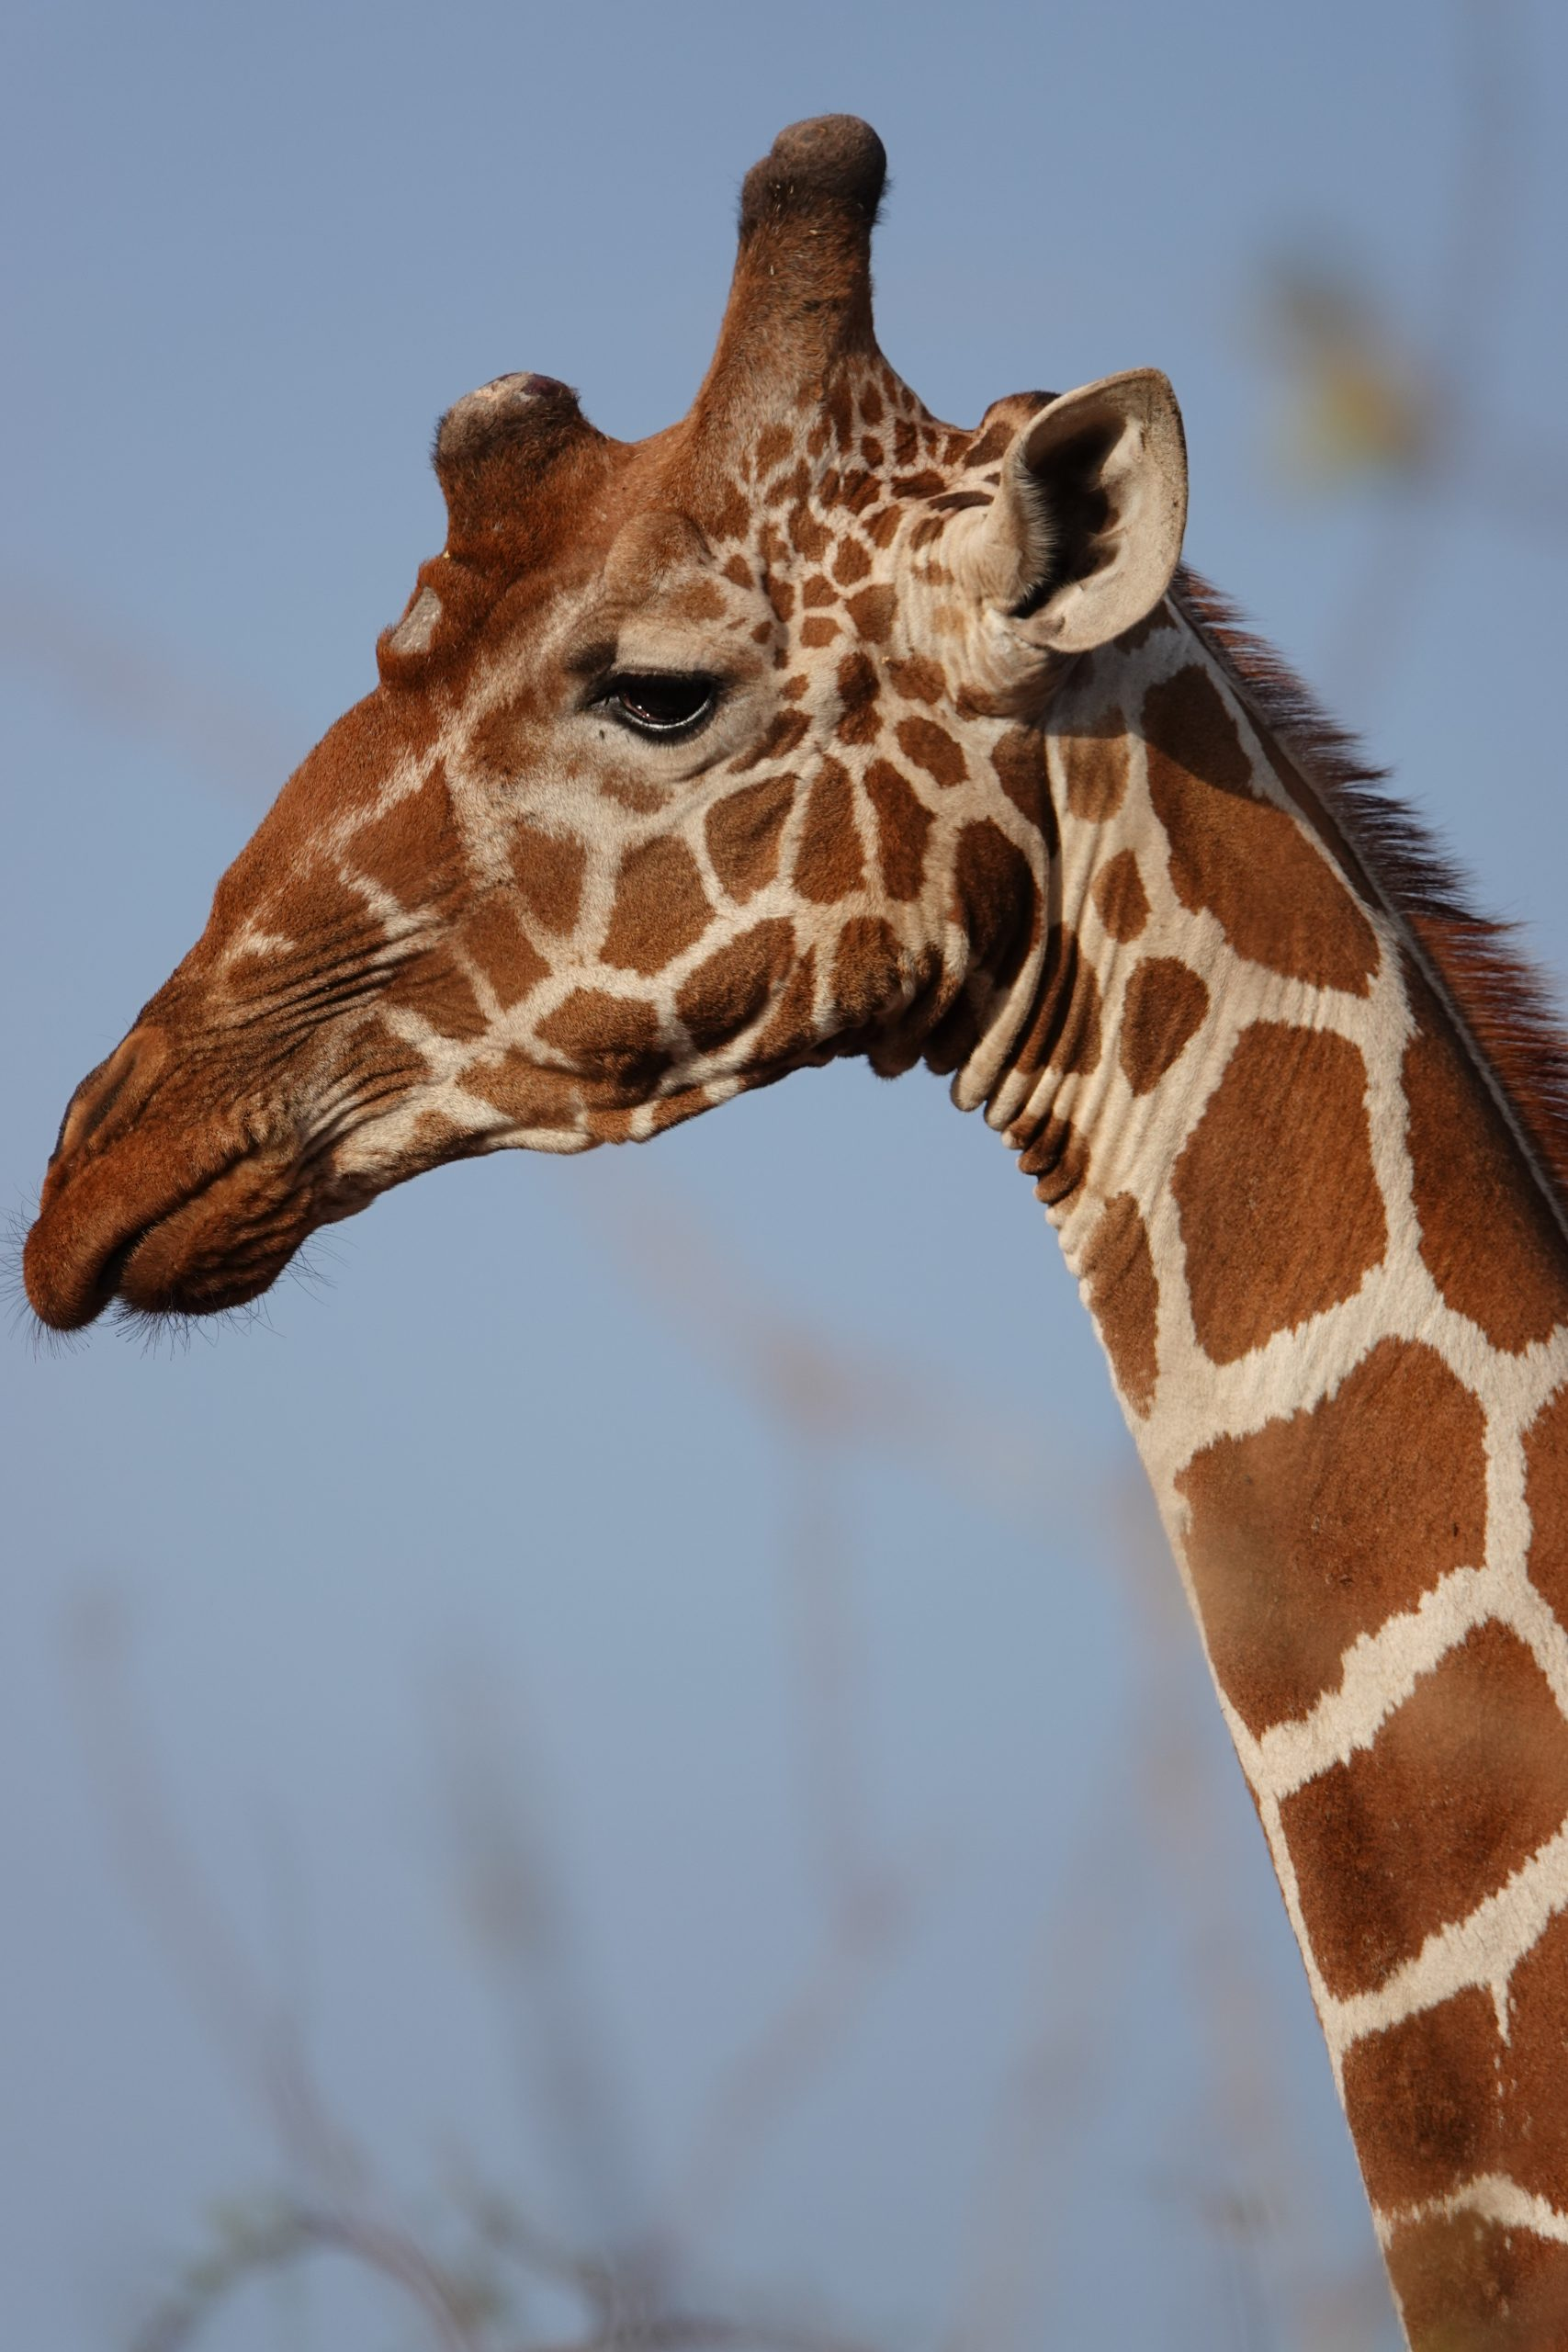 Giraffe Facts to explore & learn. Weiler Woods for Wildlife